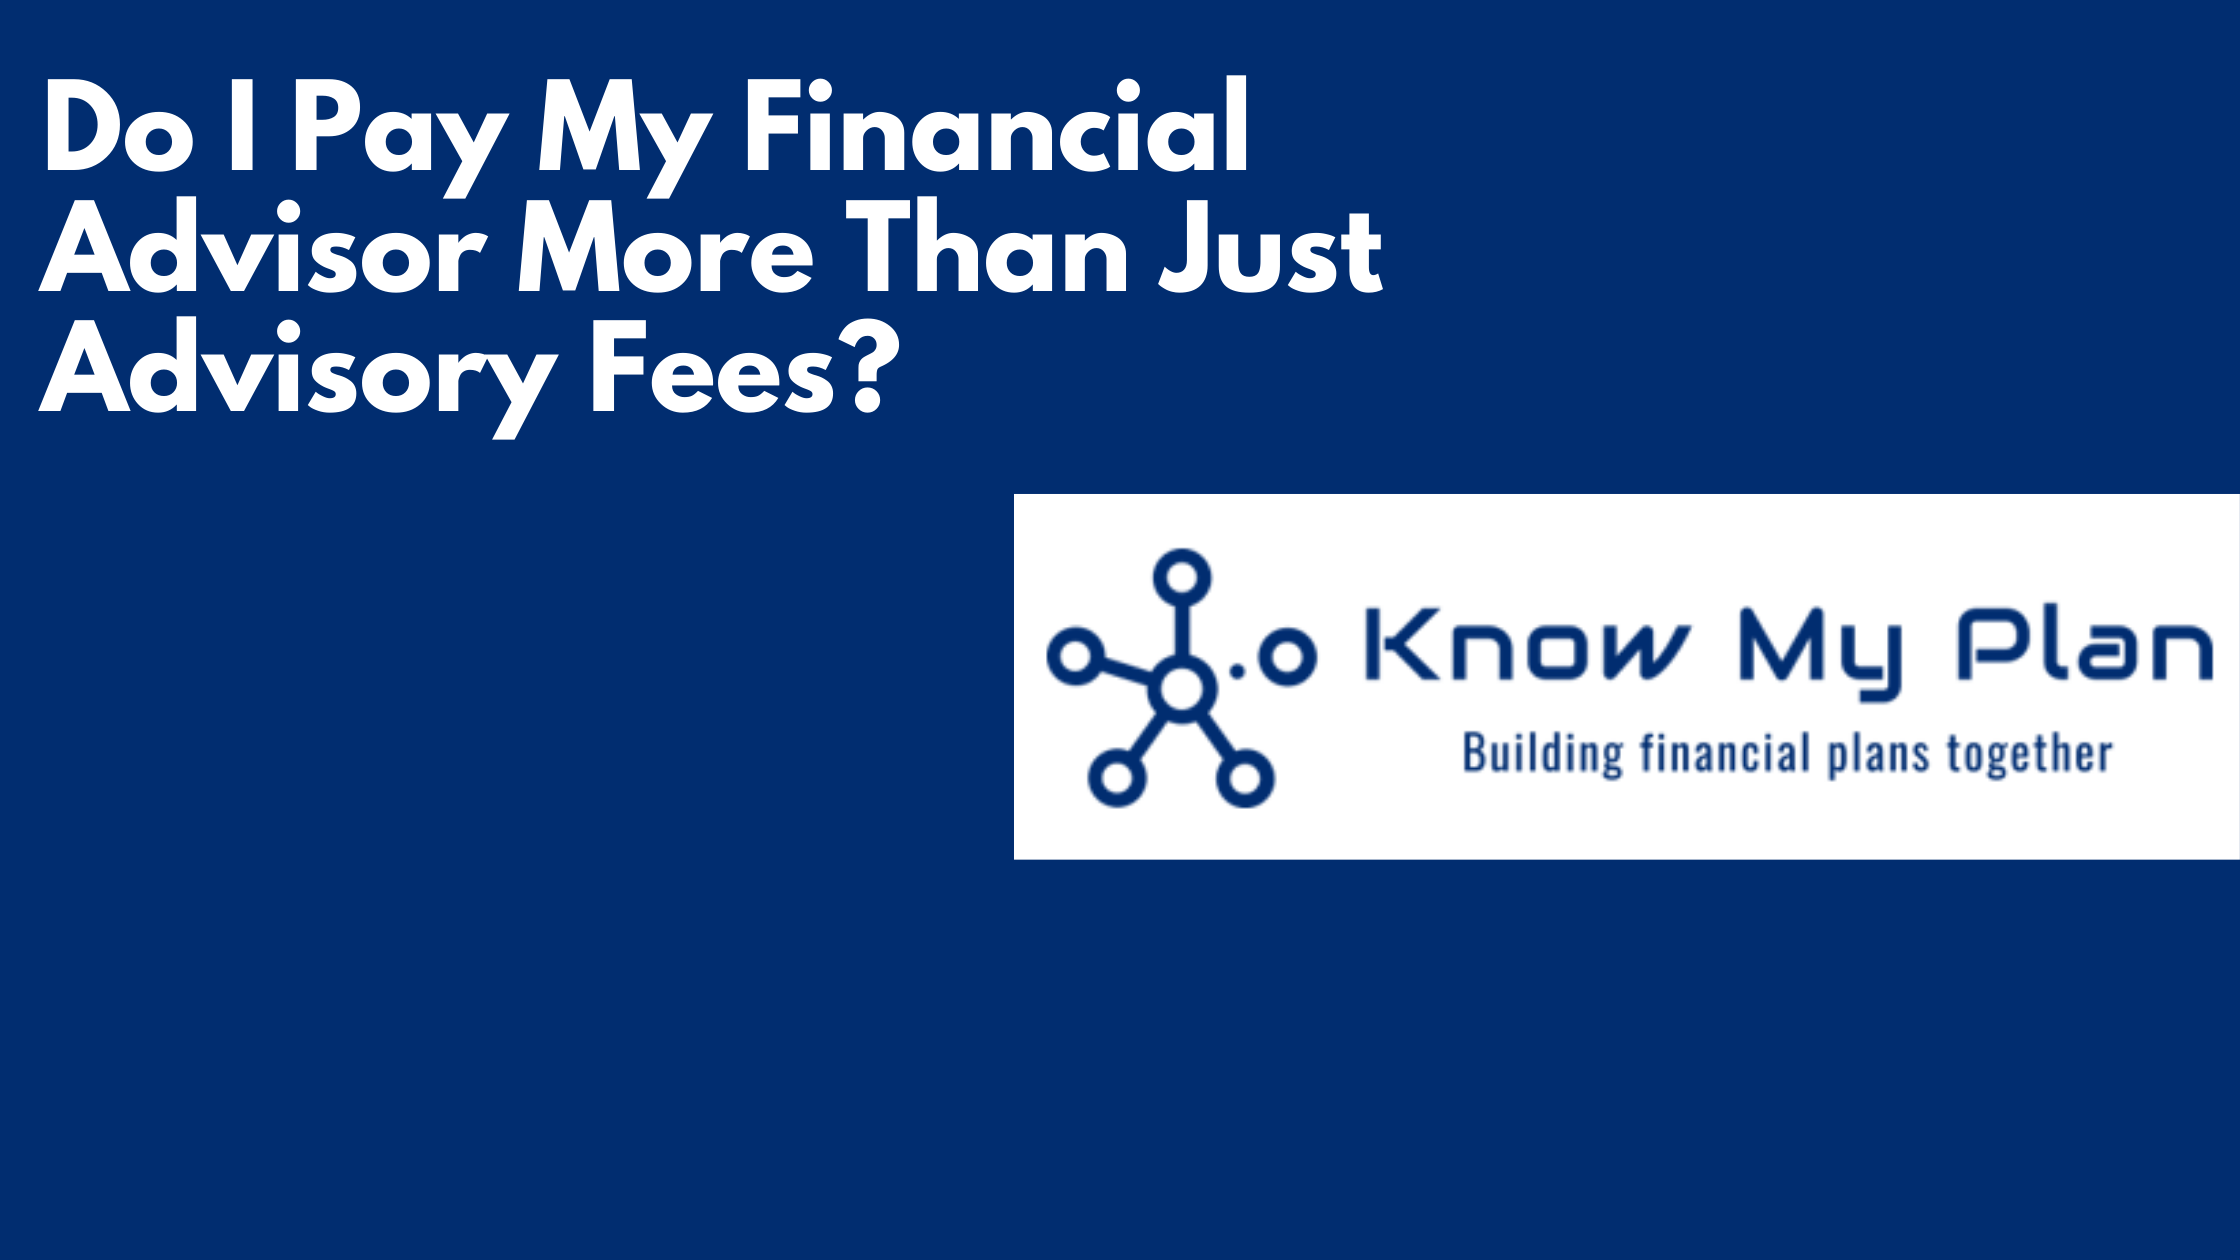 Do I Pay My Financial Advisor More Than Just Advisory Fees? Thumbnail